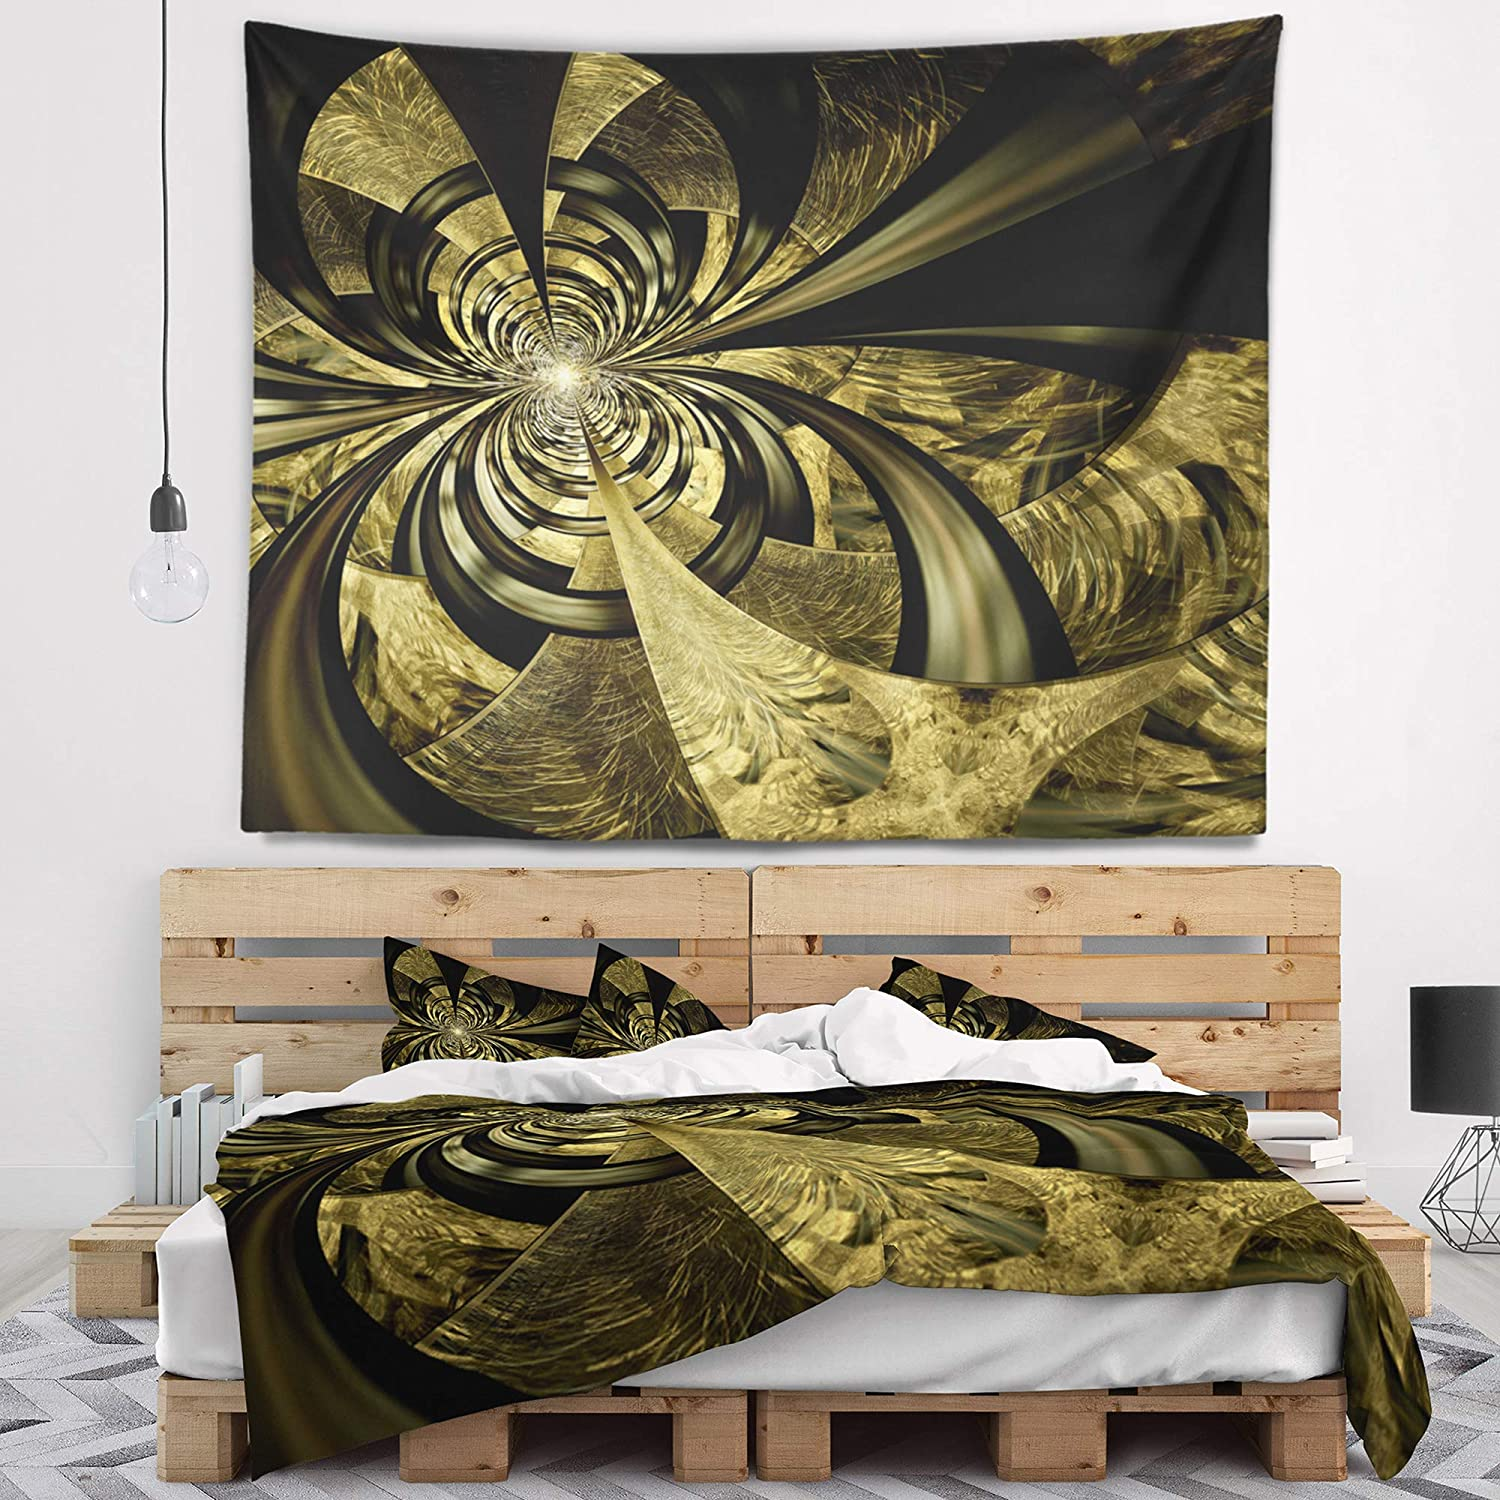 x 50 in Created On Lightweight Polyester Fabric Designart TAP16430-60-50  Colorful Fractal Flower Pattern Abstract Blanket D/écor Art for Home and Office Wall Tapestry Large 60 in